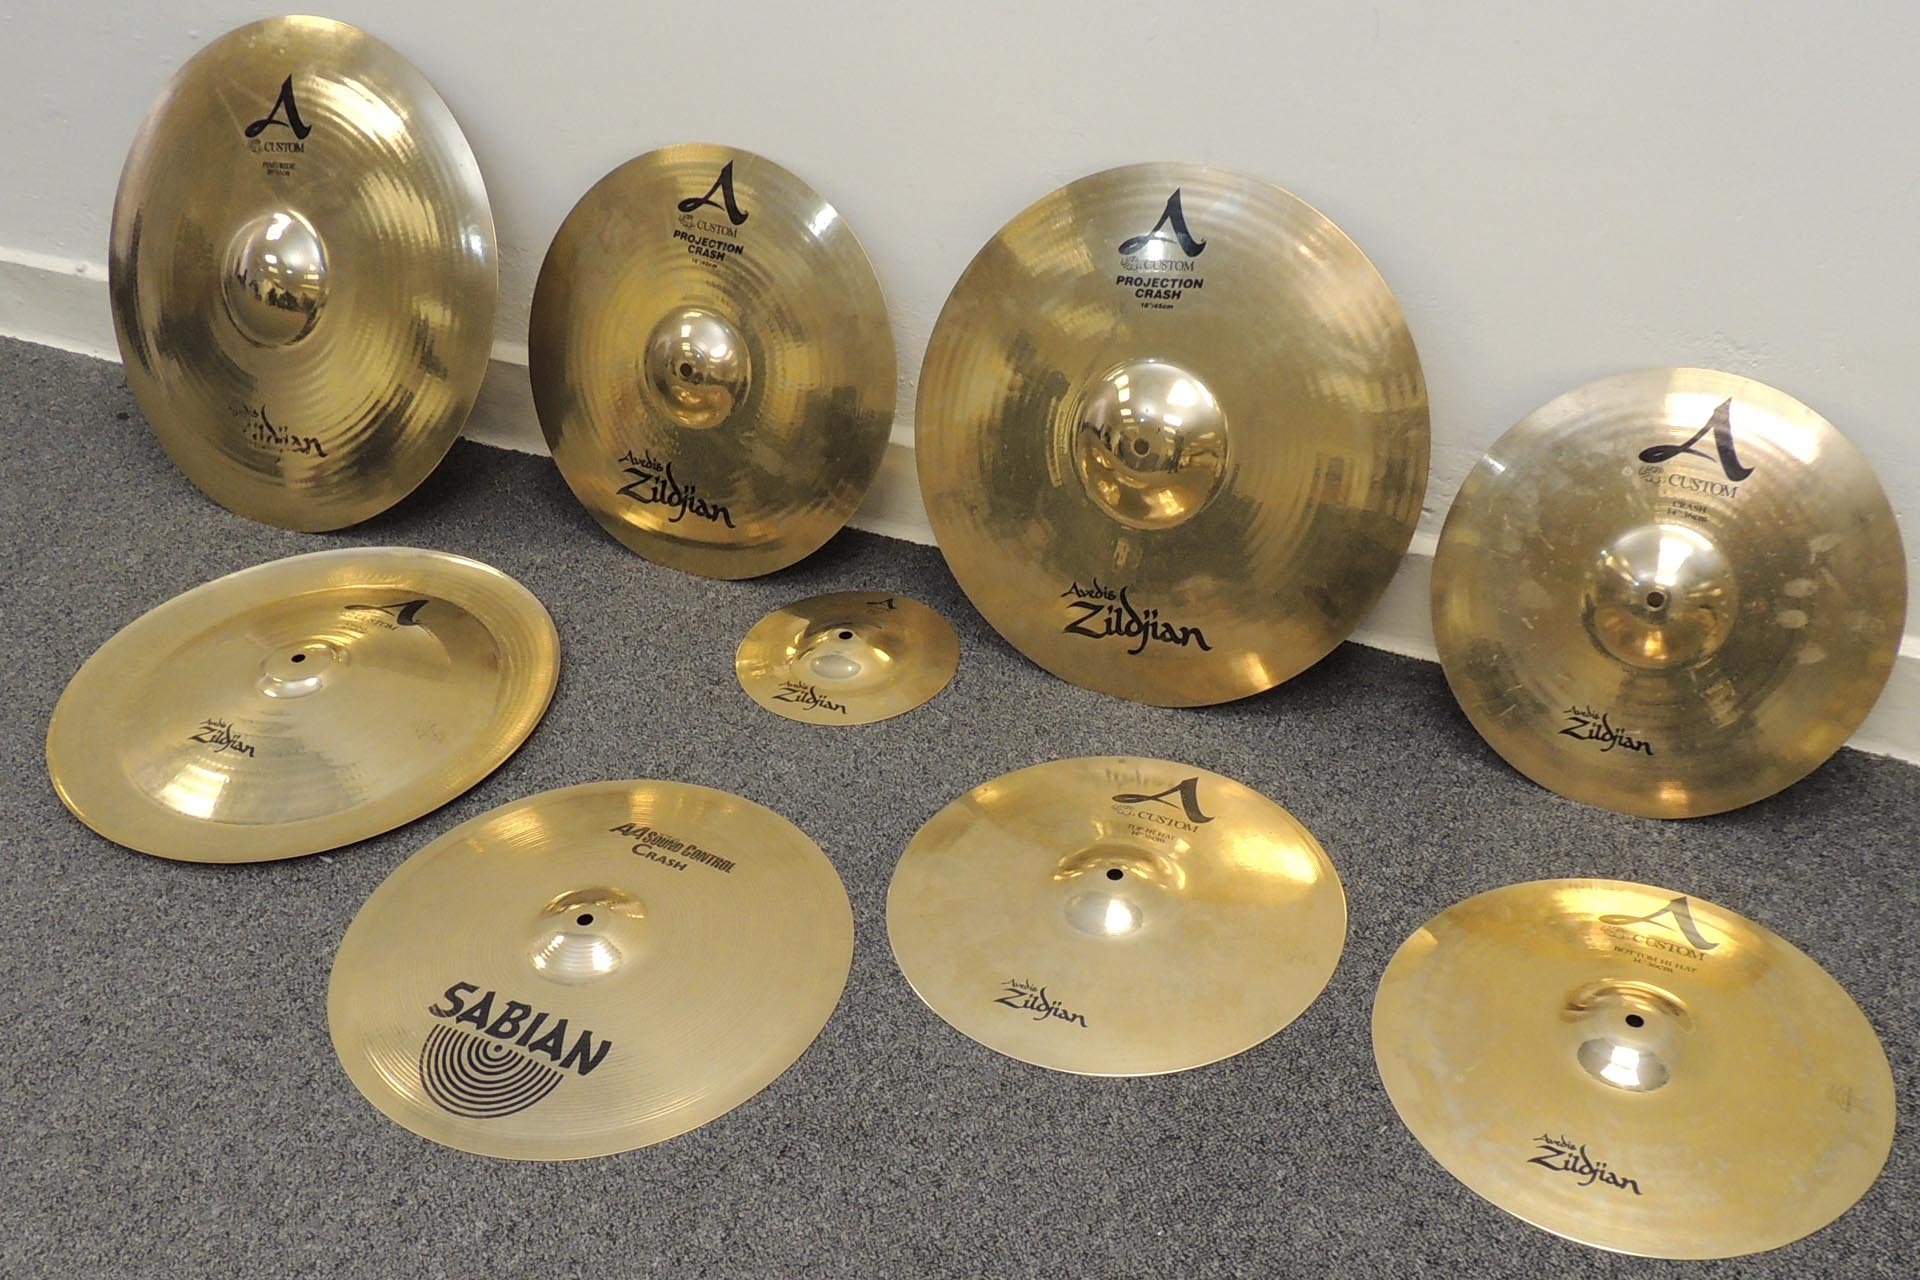 Zildjian cymbals for sale at Plasma Music